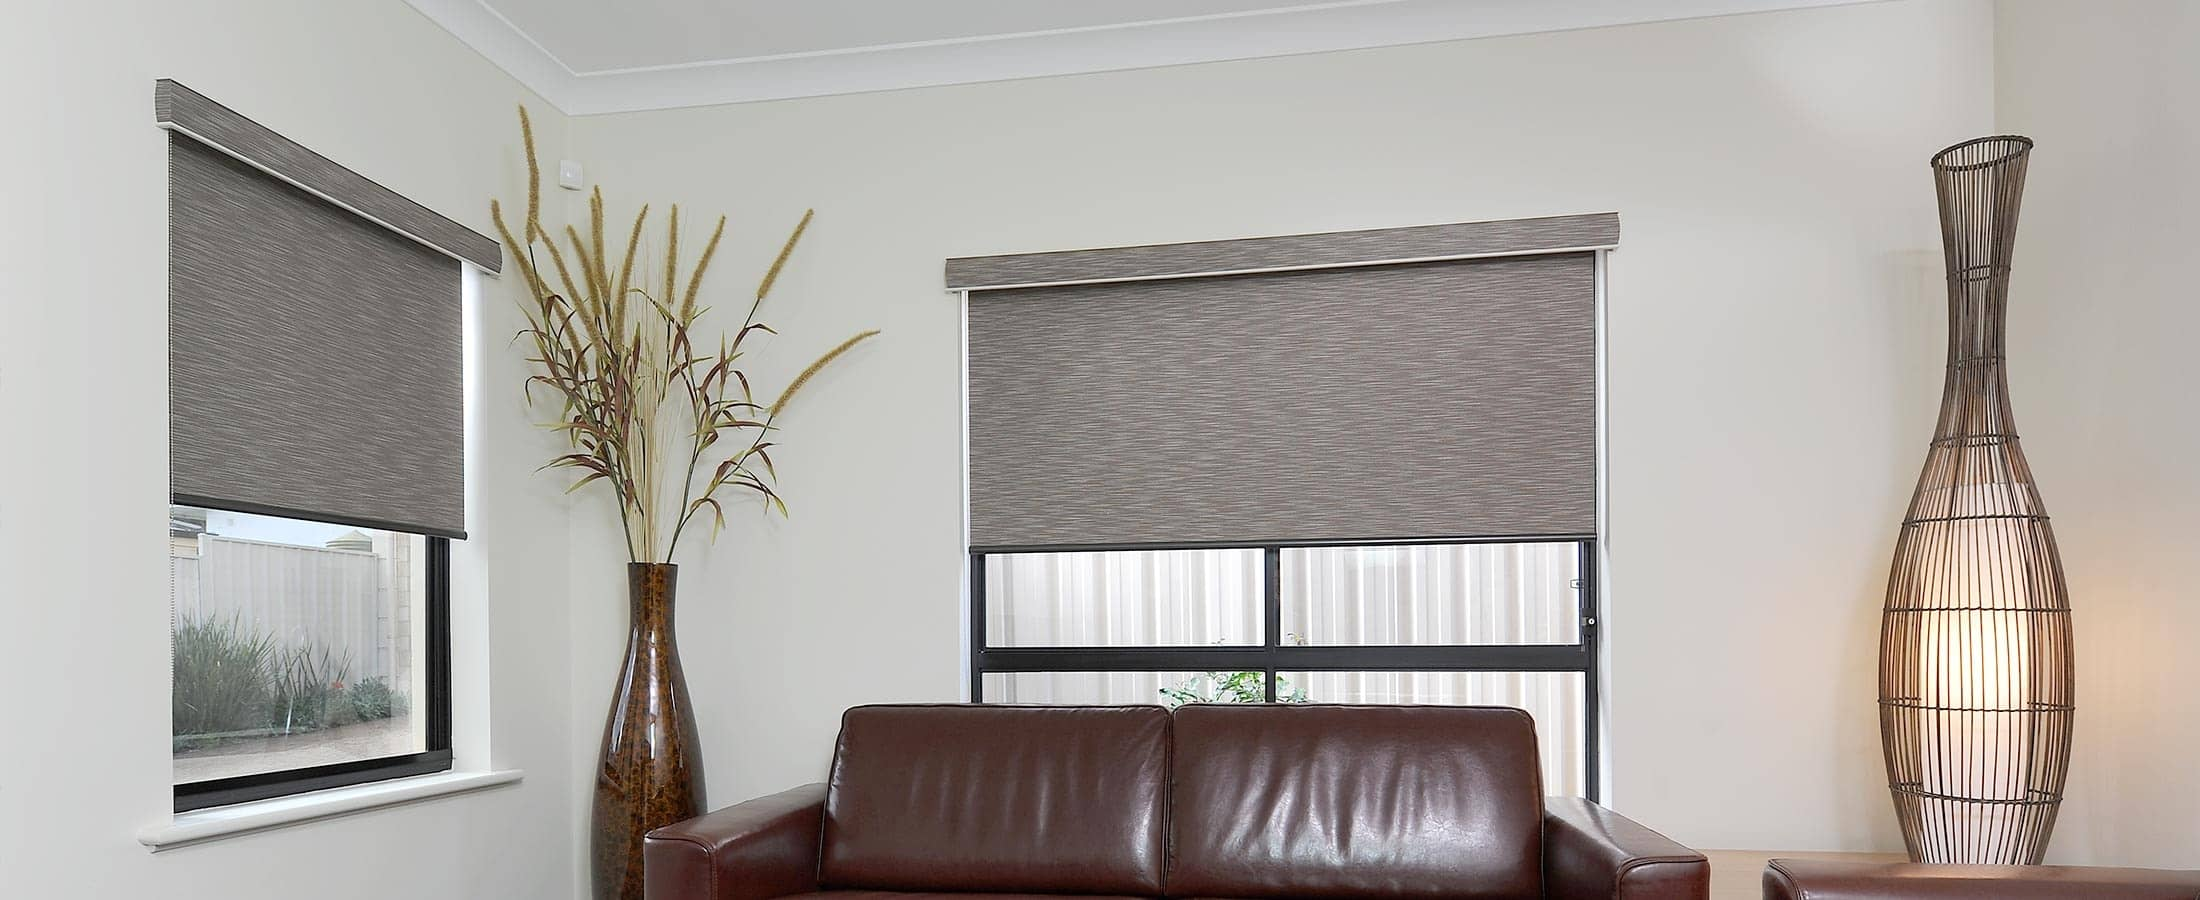 Online Home Designer Superior Roller Blinds Perth Abc Blinds Biggest Range